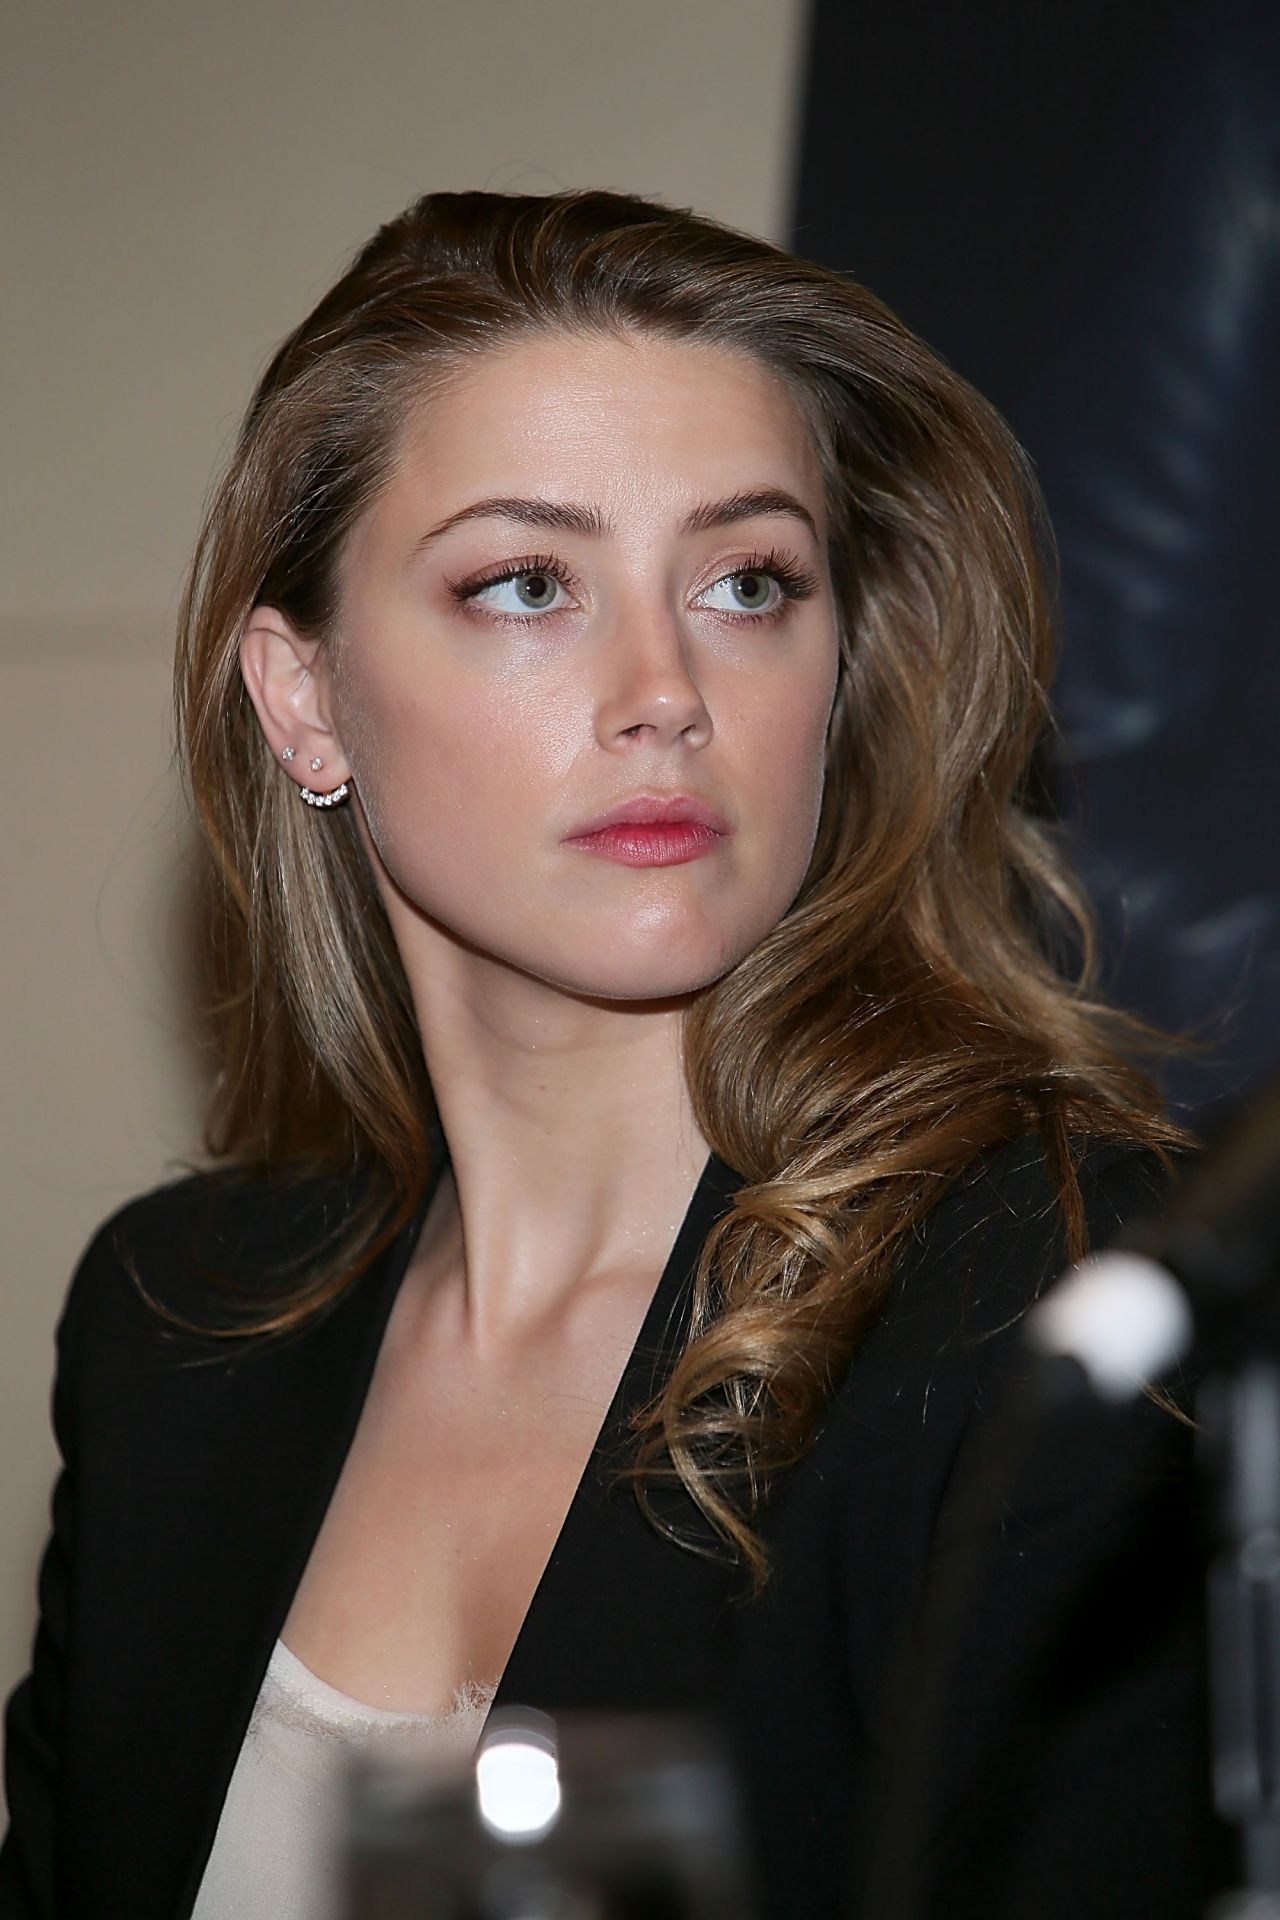 Amber Heard 2014 Texas Film Awards Press Conference